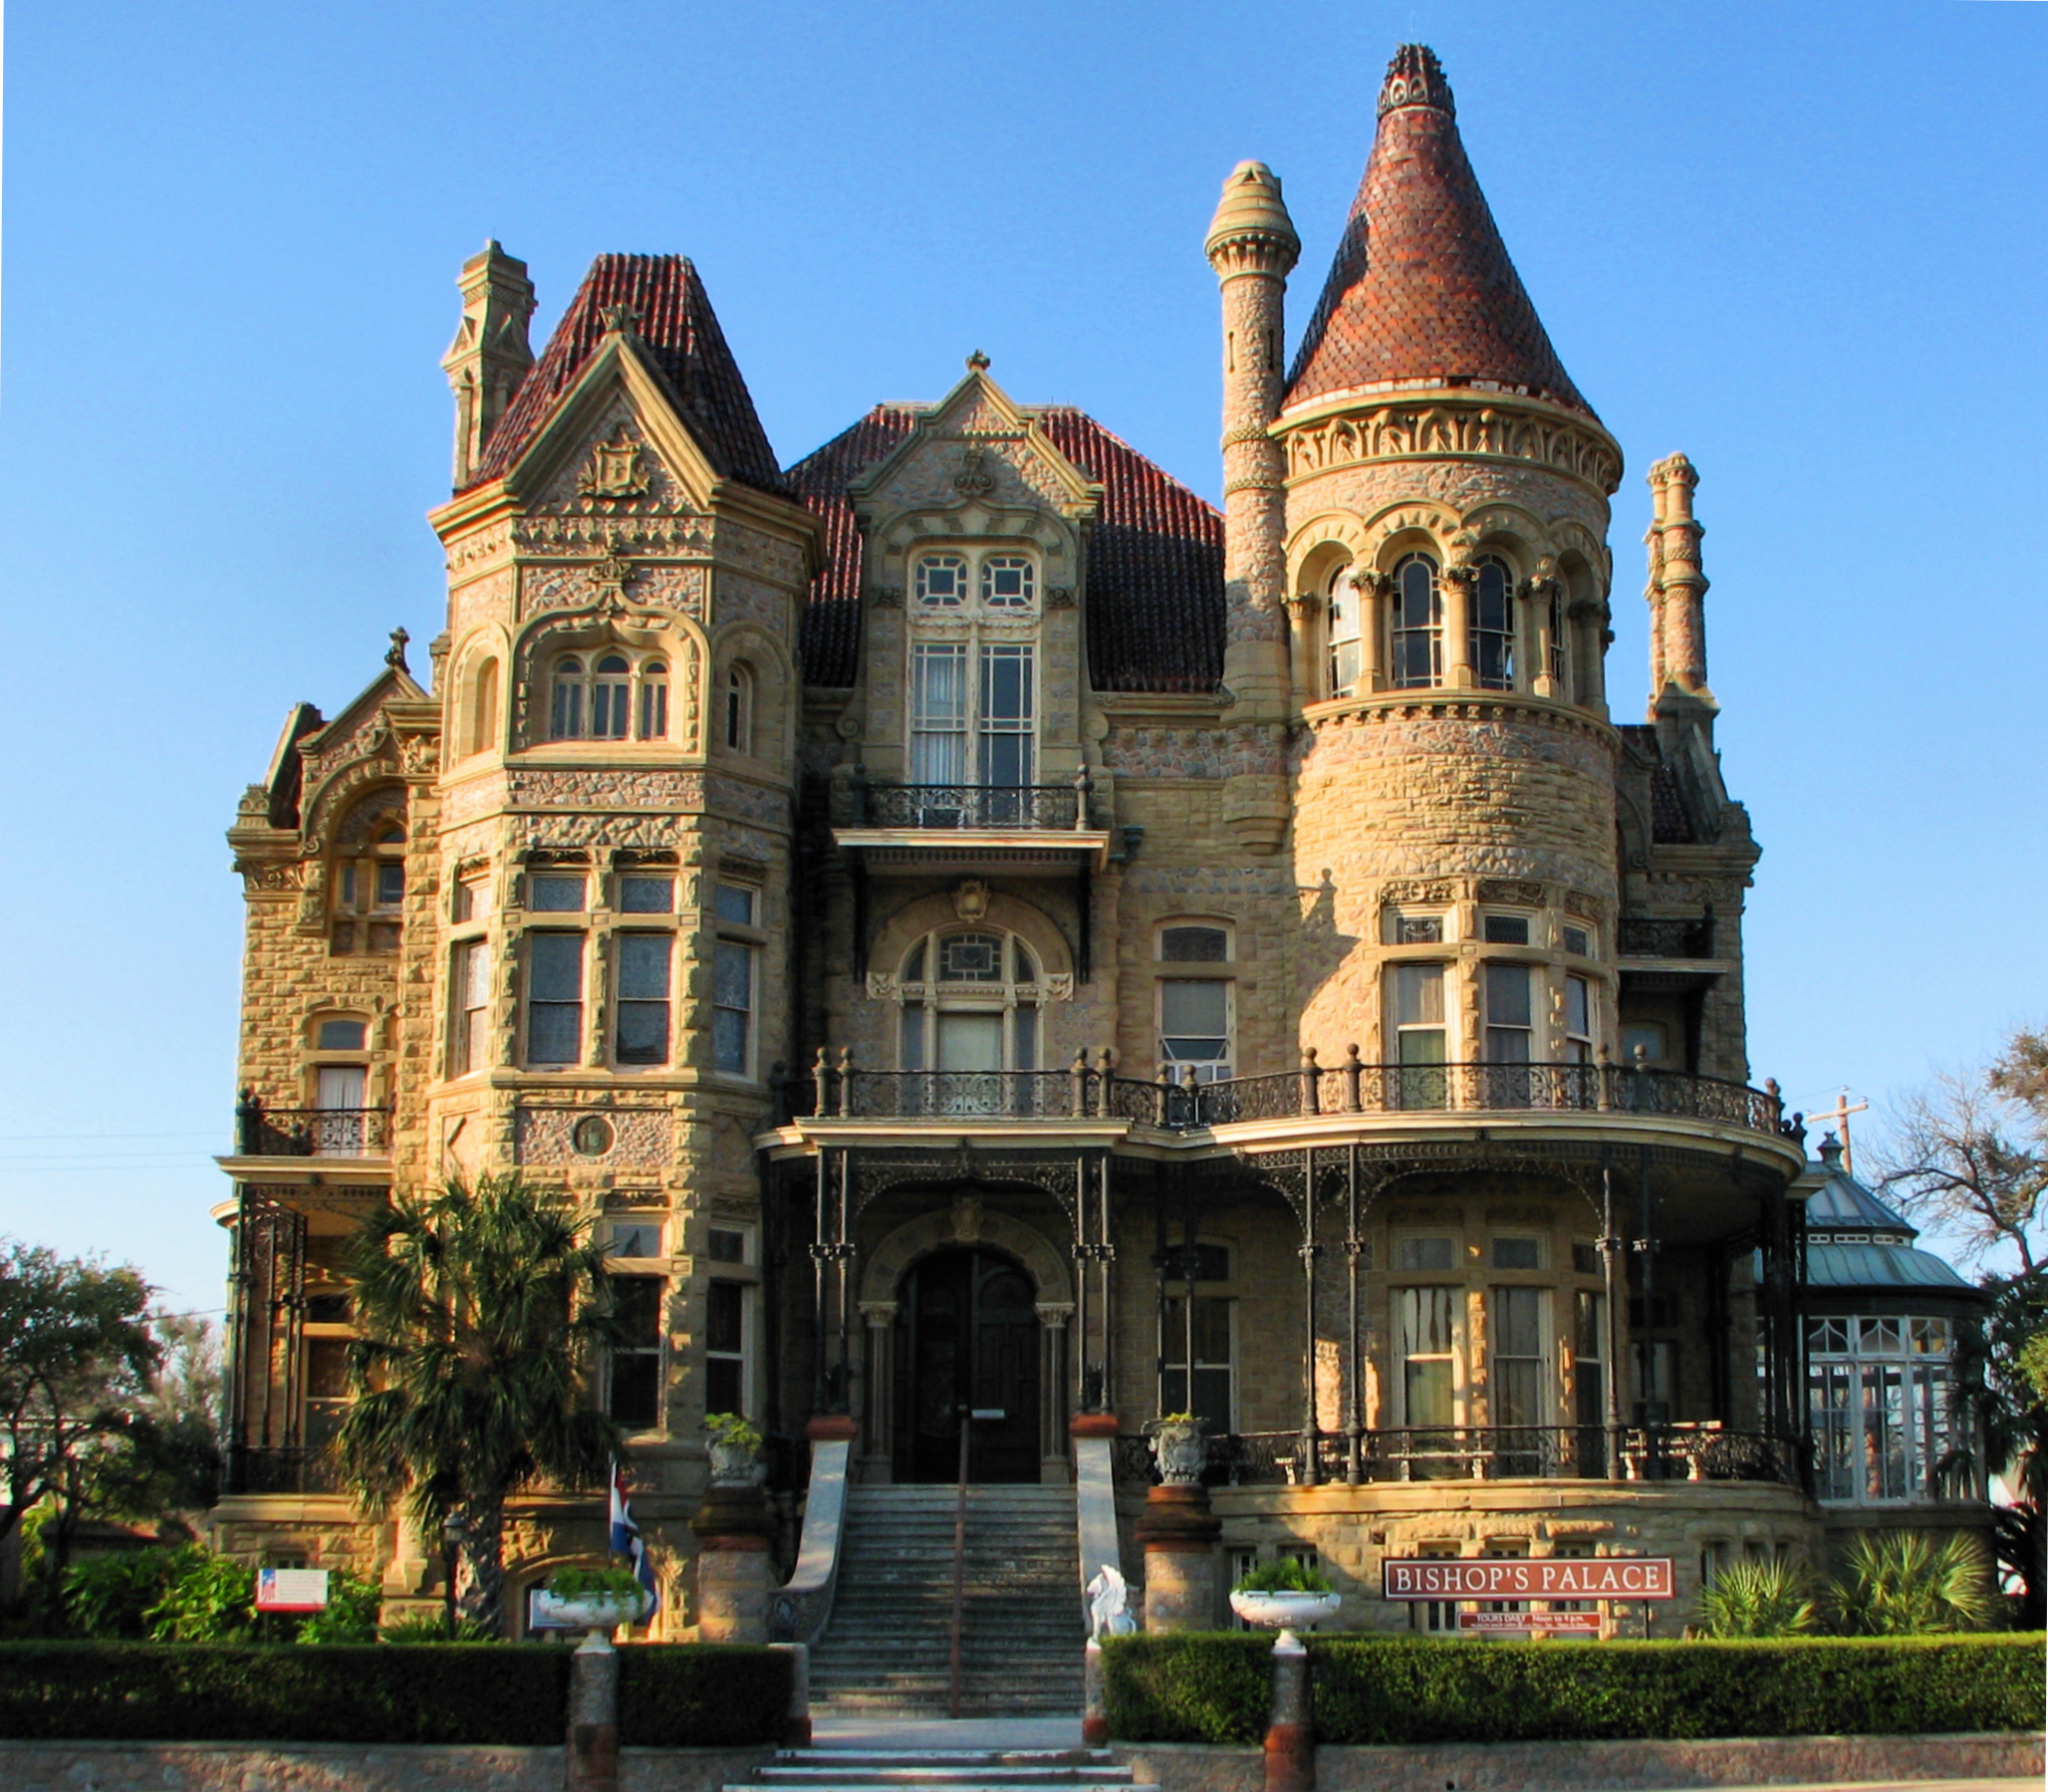 Amazing Place to Vacation in Texas-Galveston, 1892 Bishop's Palace